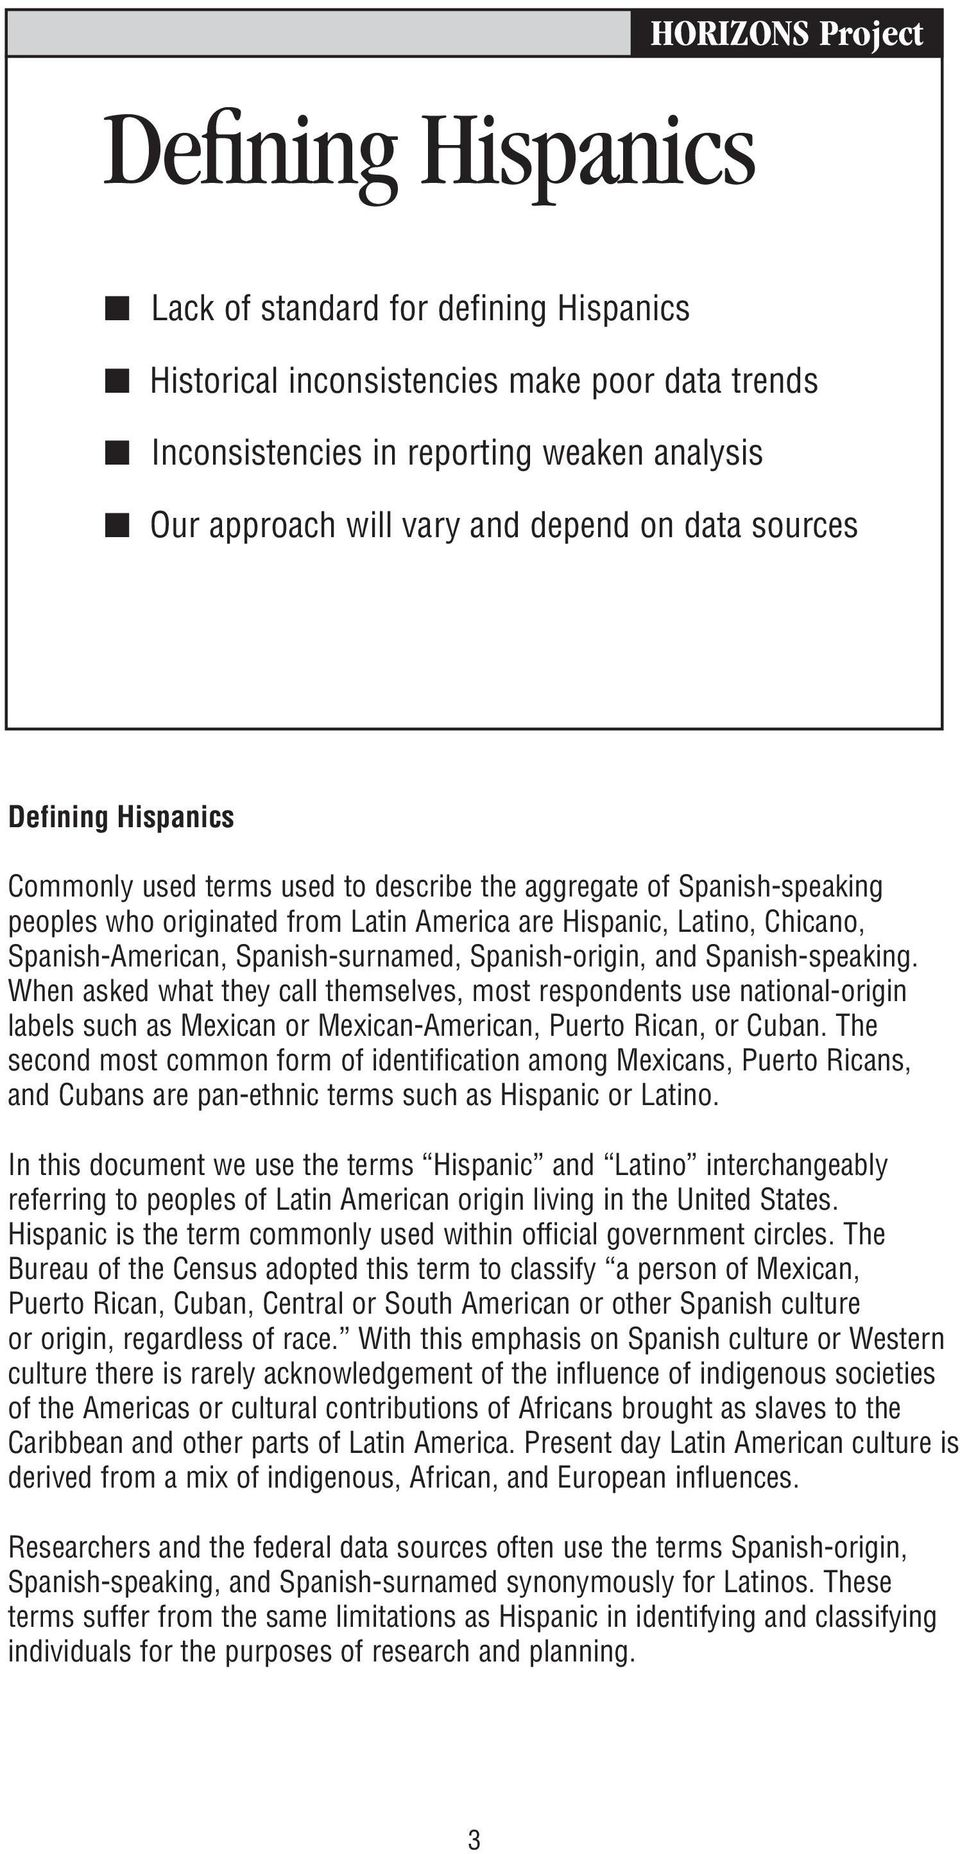 Spanish-surnamed, Spanish-origin, and Spanish-speaking. When asked what they call themselves, most respondents use national-origin labels such as Mexican or Mexican-American, Puerto Rican, or Cuban.